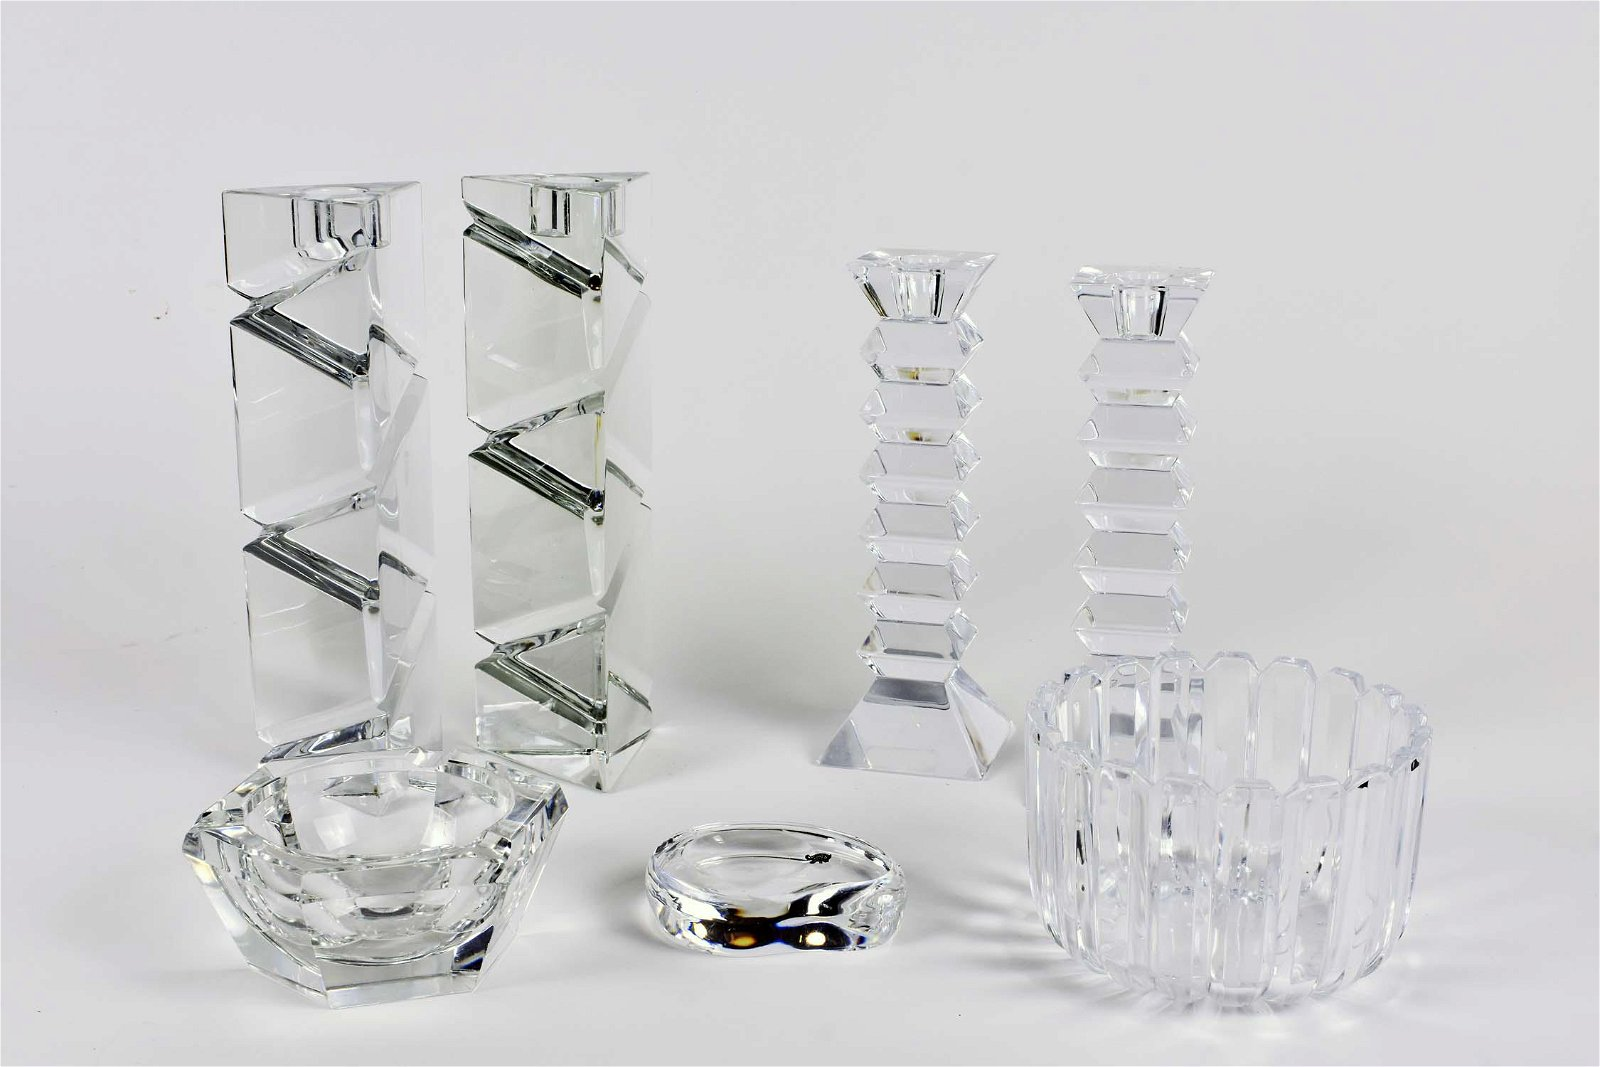 SEVEN COLORLESS GLASS TABLE ITEMS